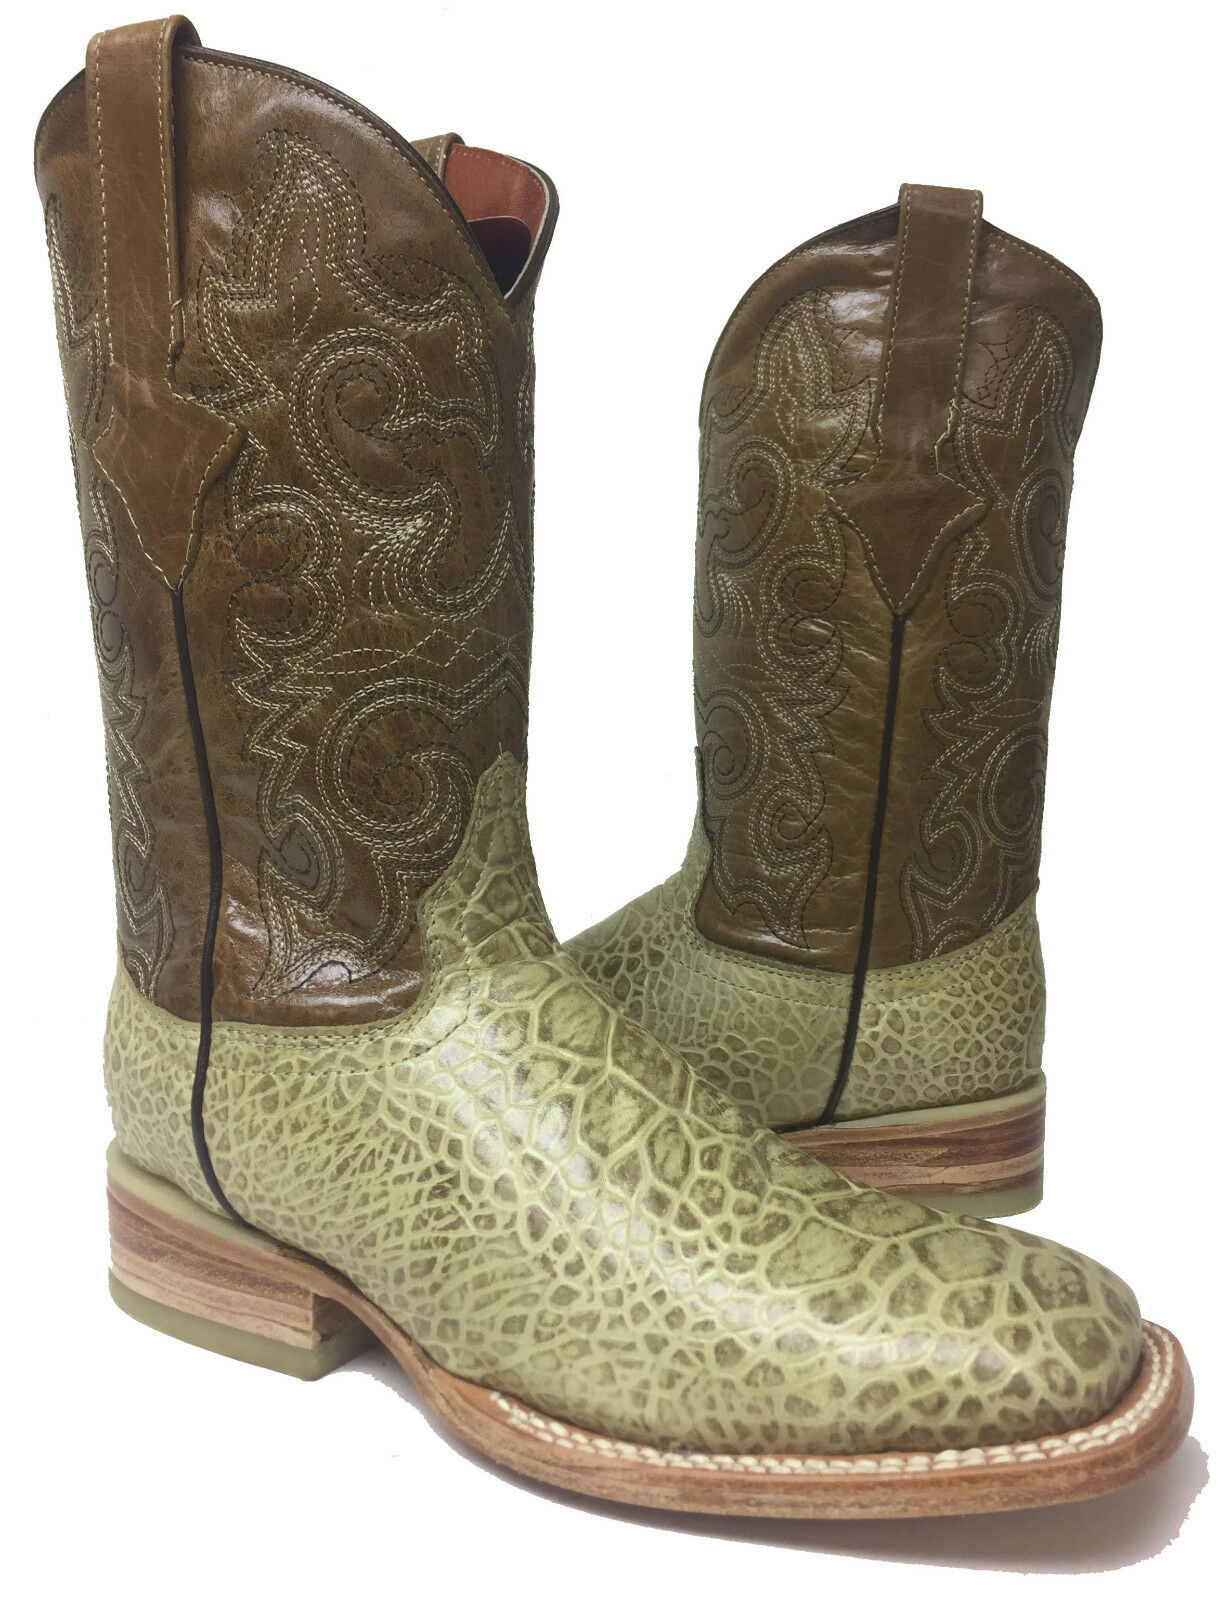 Mens Beige Orix Crocodile Alligator Belly Leather Cowboy Western Boots Size 6